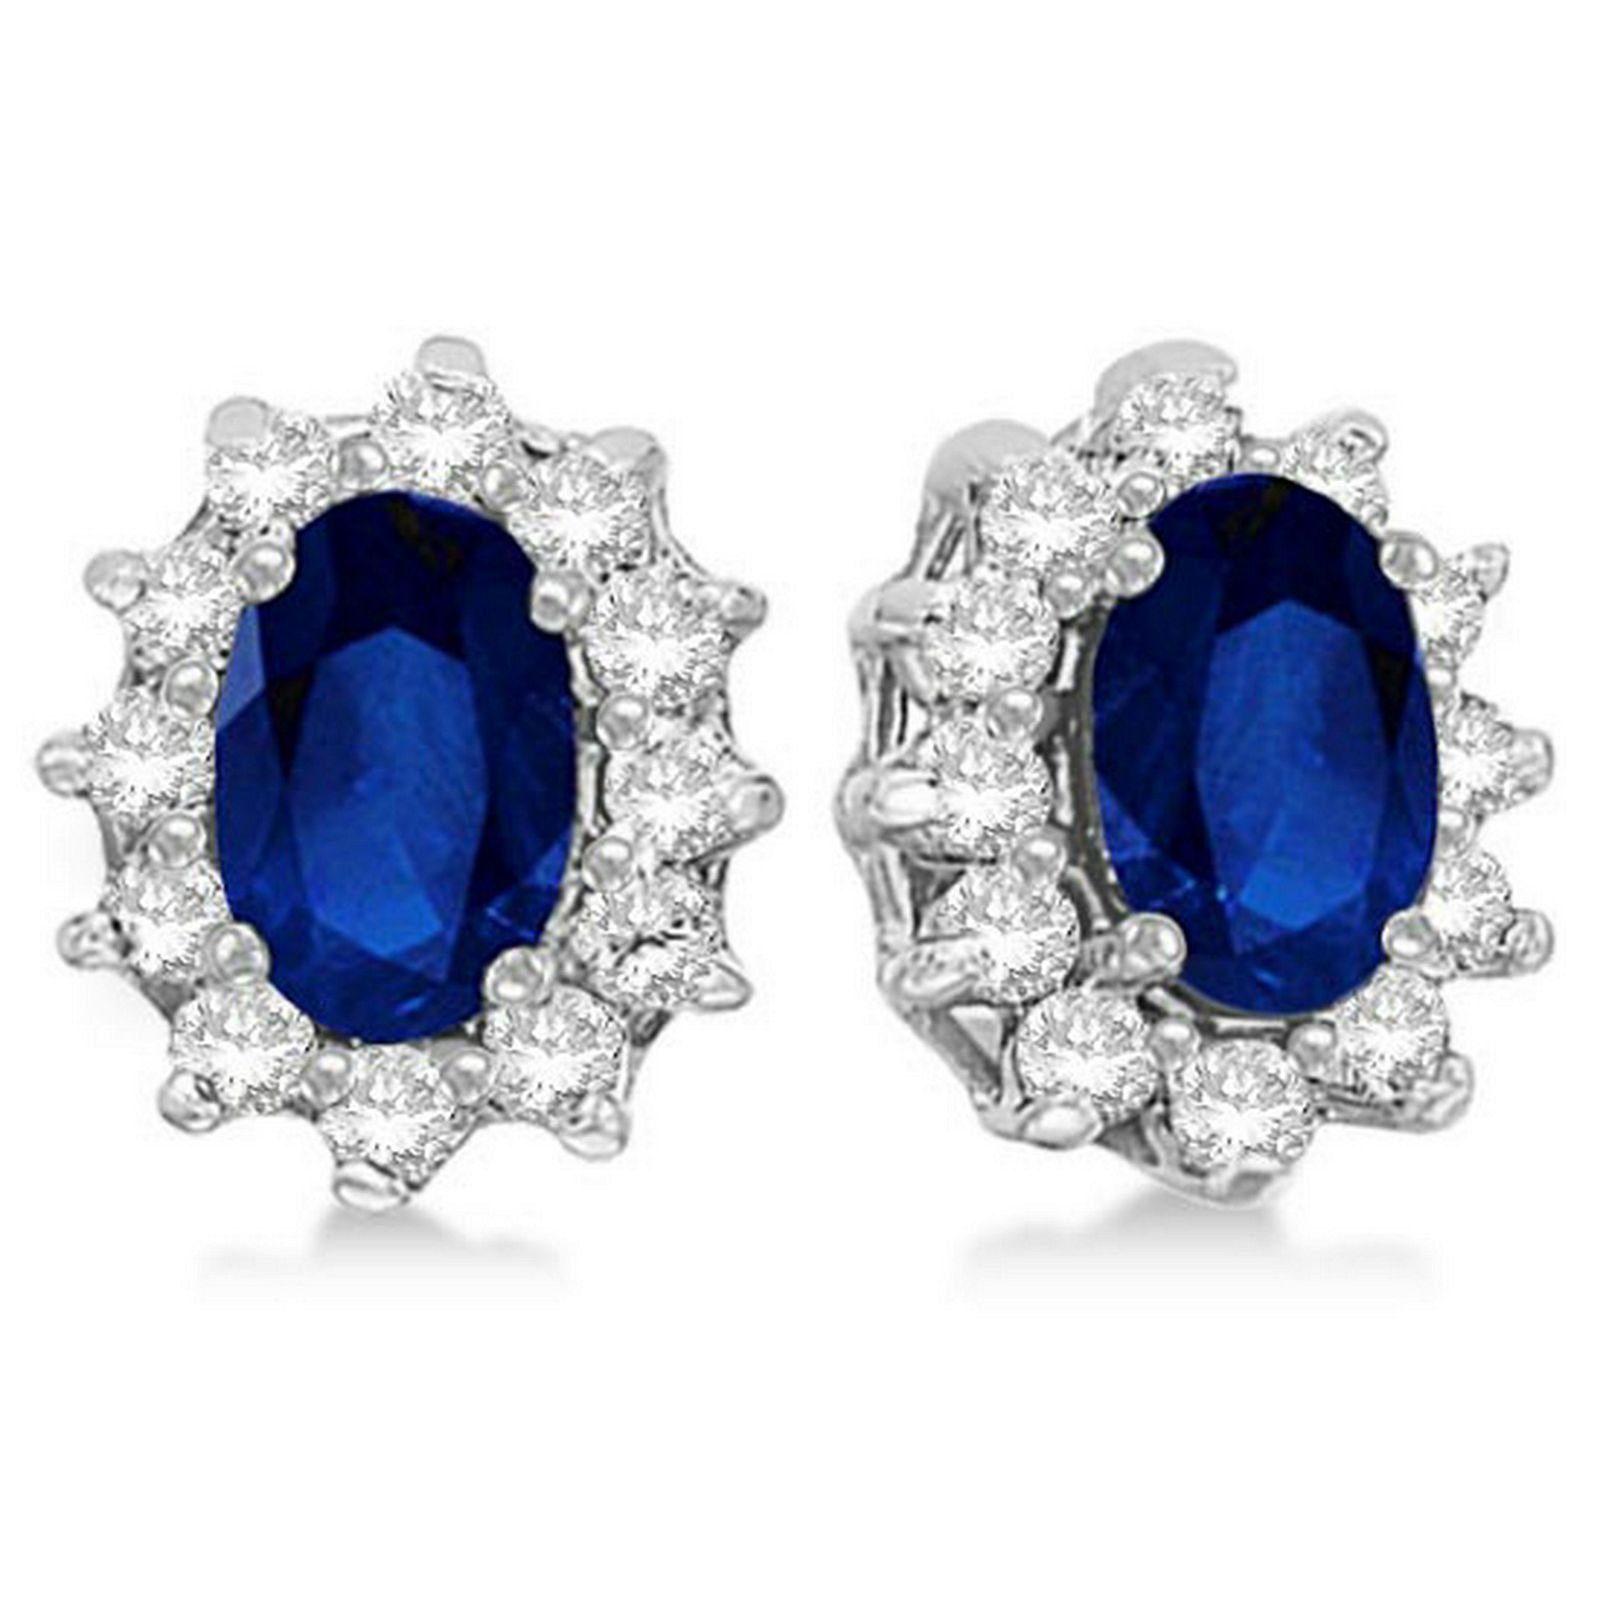 Oval Blue Sapphire and Diamond Accented Earrings 14k Wh